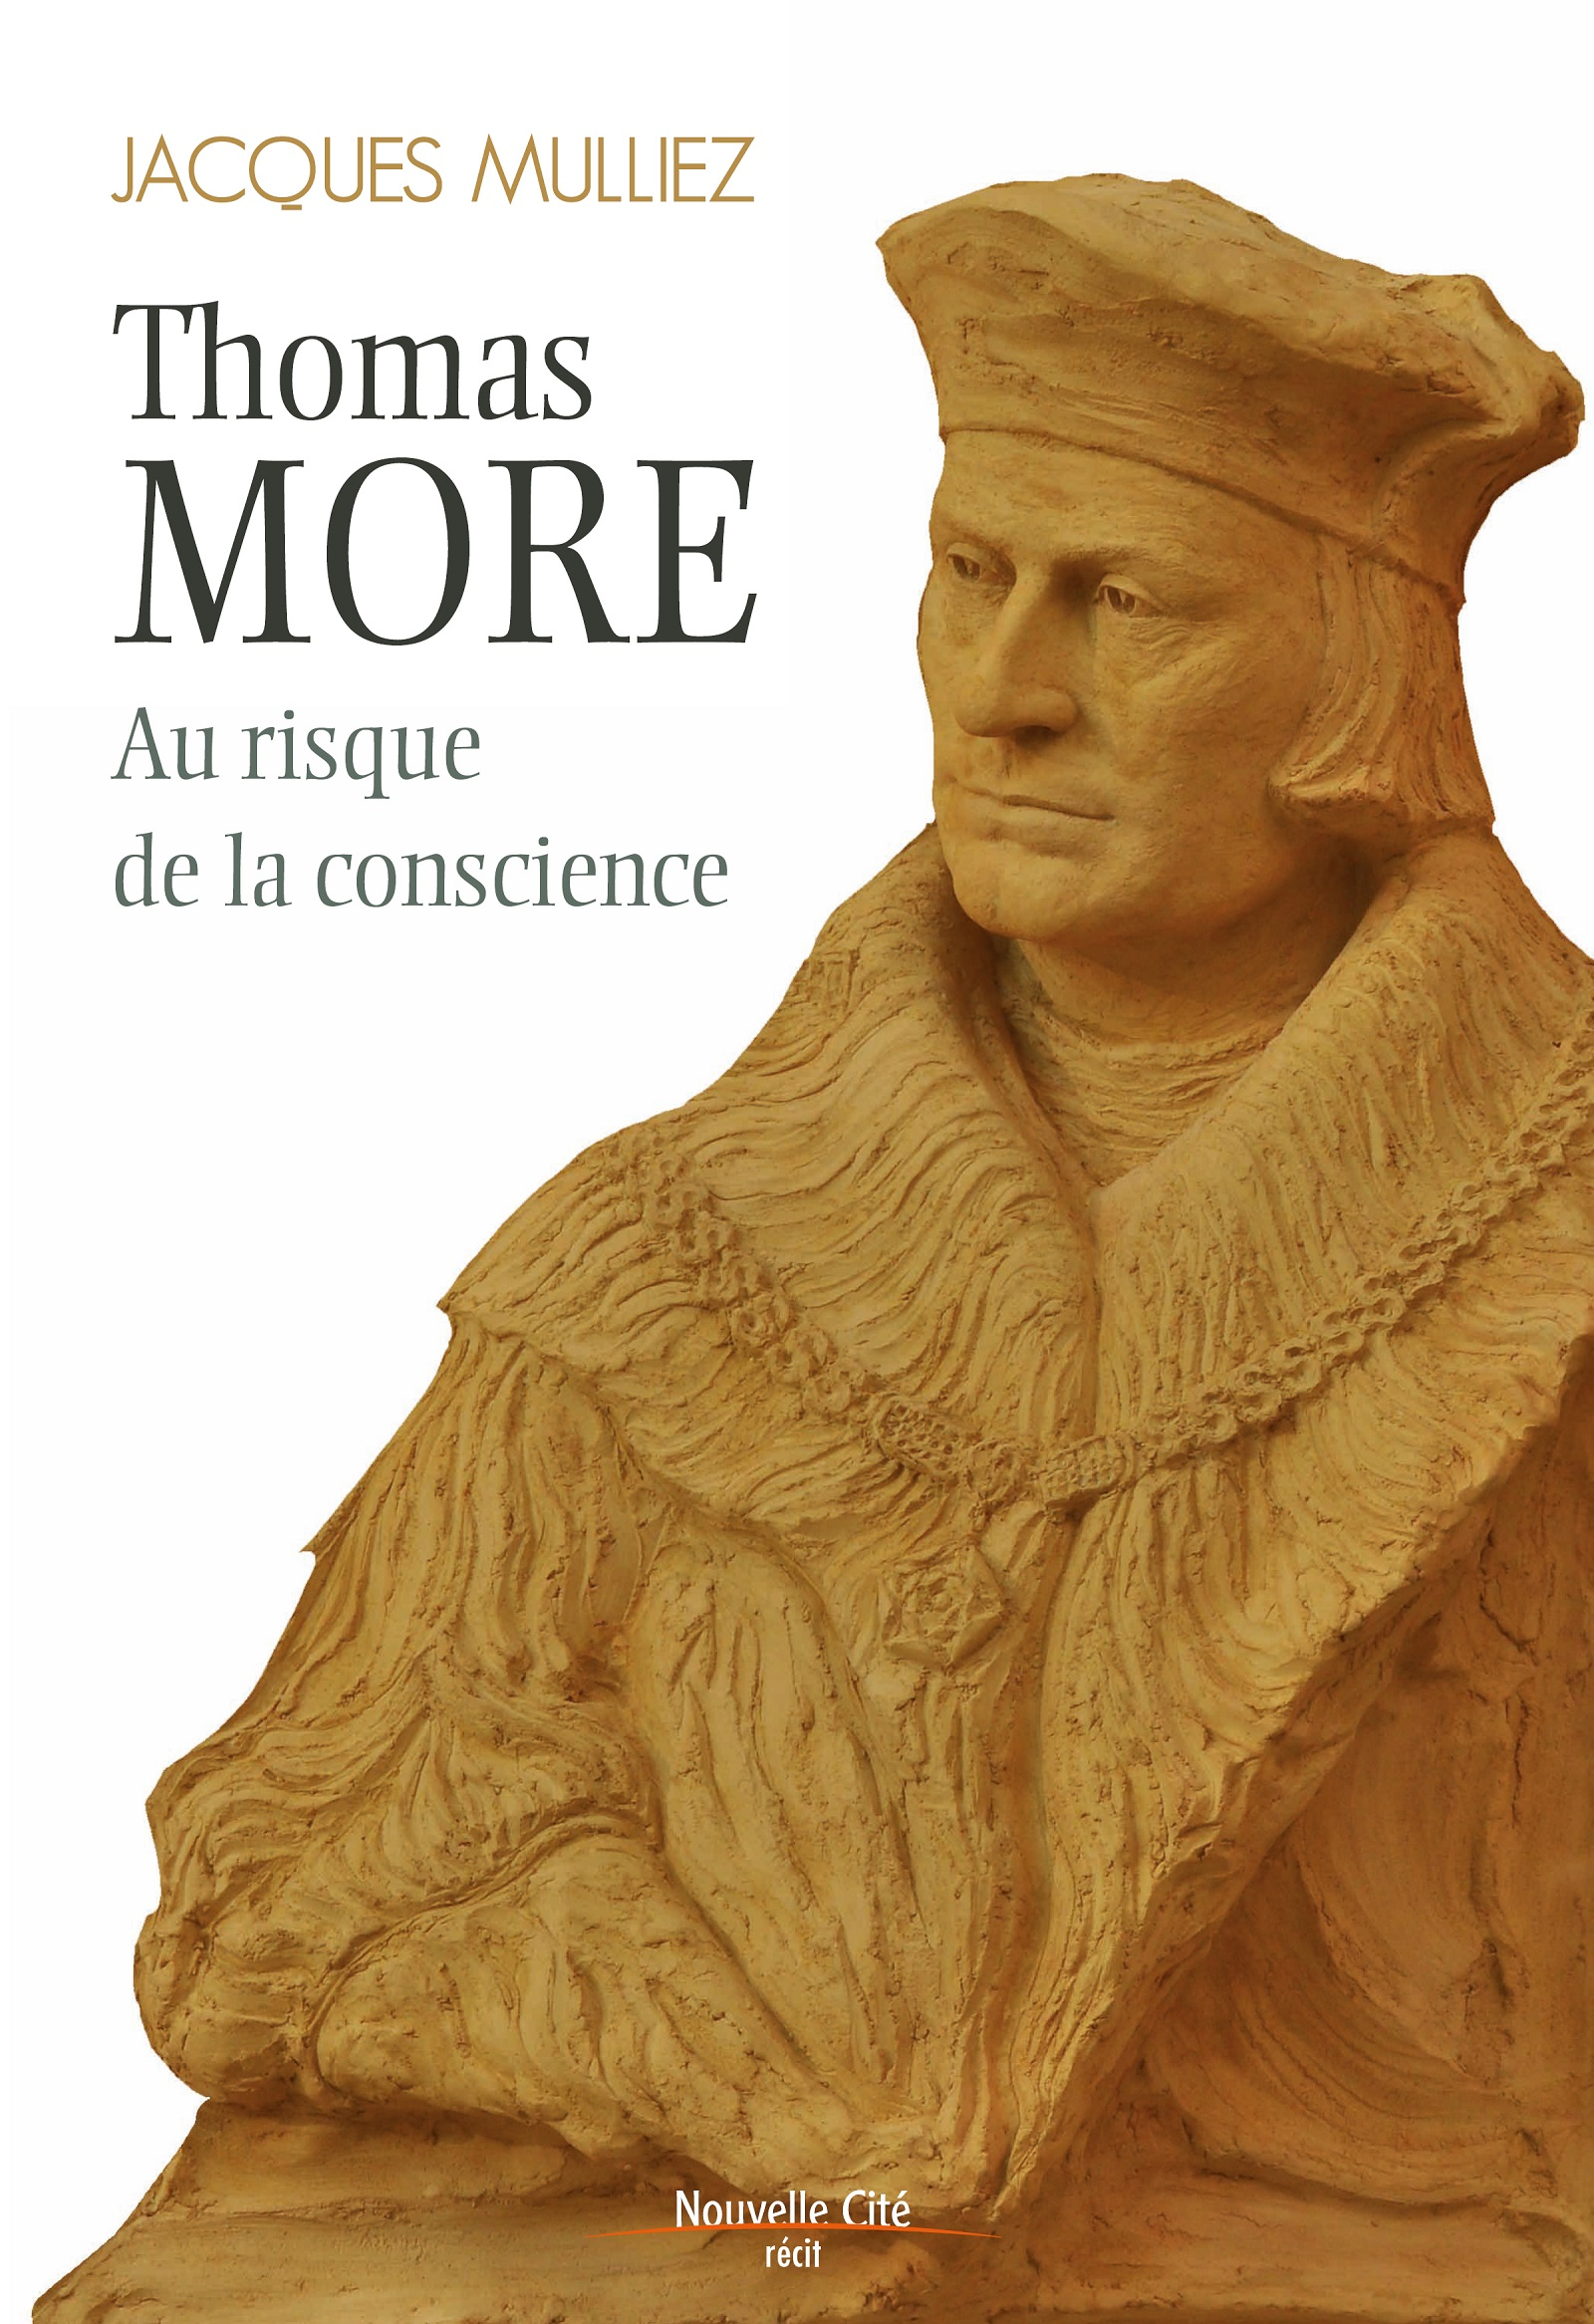 Thomas More, au risque de la conscience